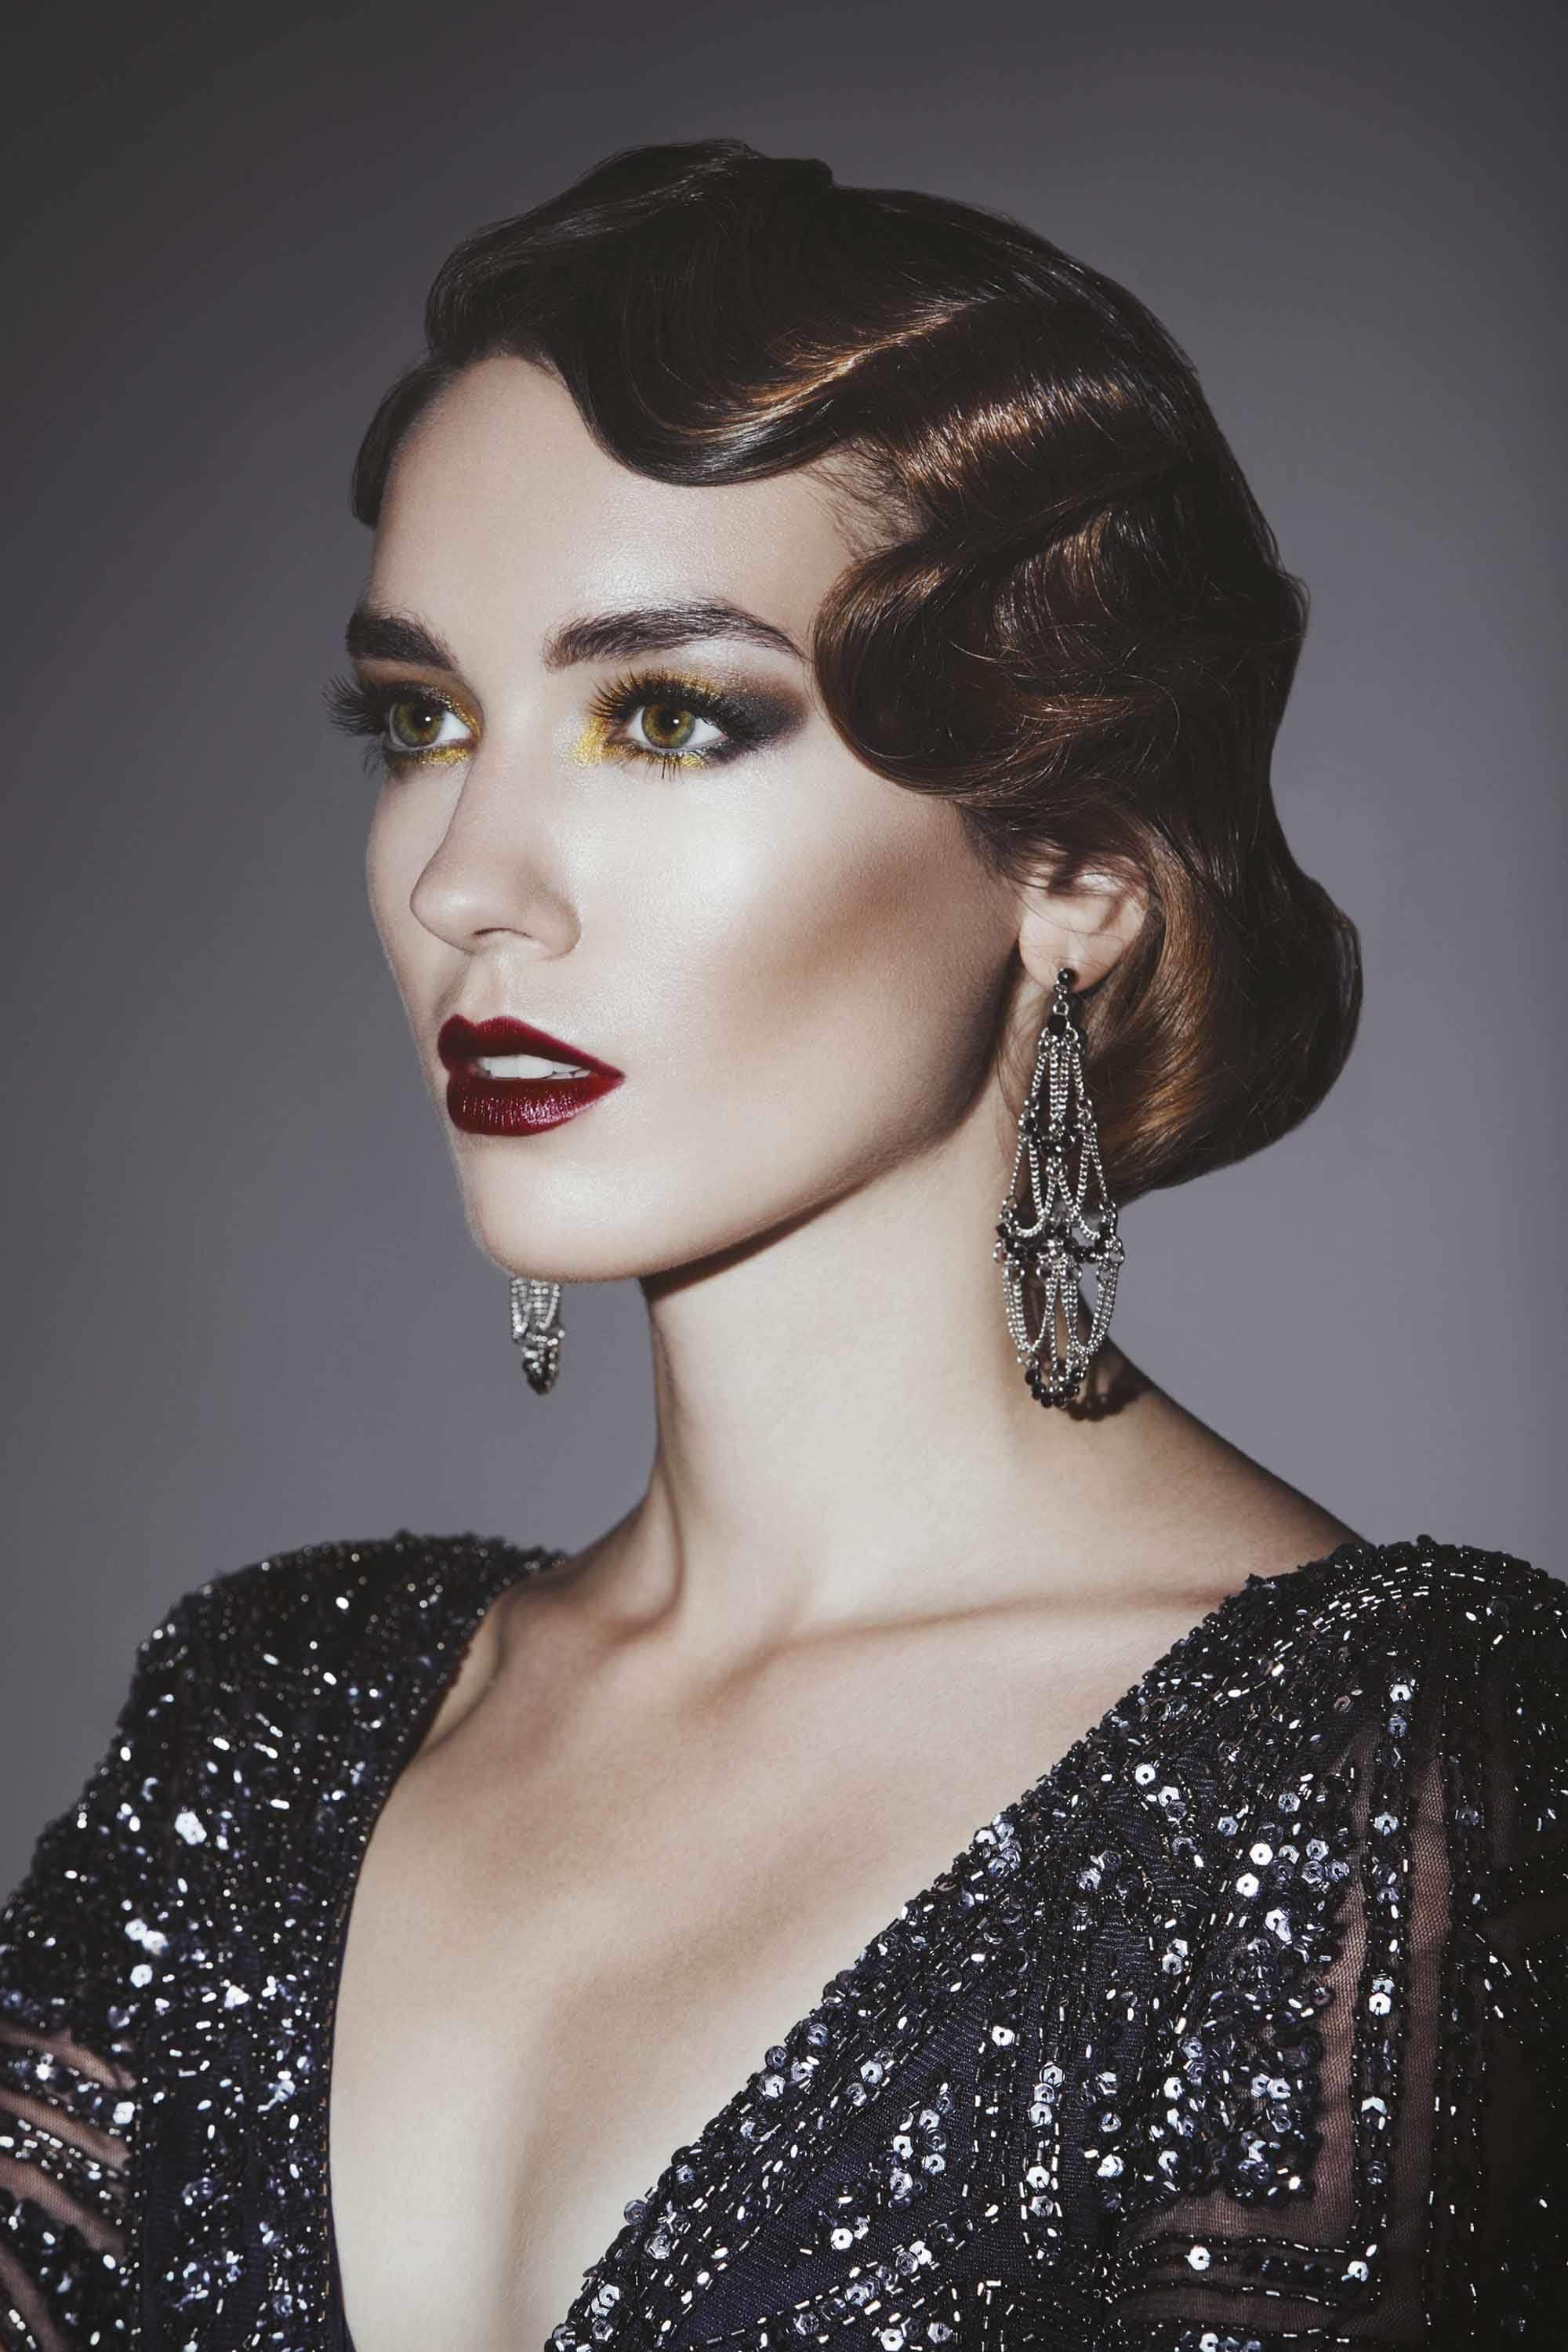 Gatsby Hair + Makeup   1920s Finger Waves   Smoky Eye and ...